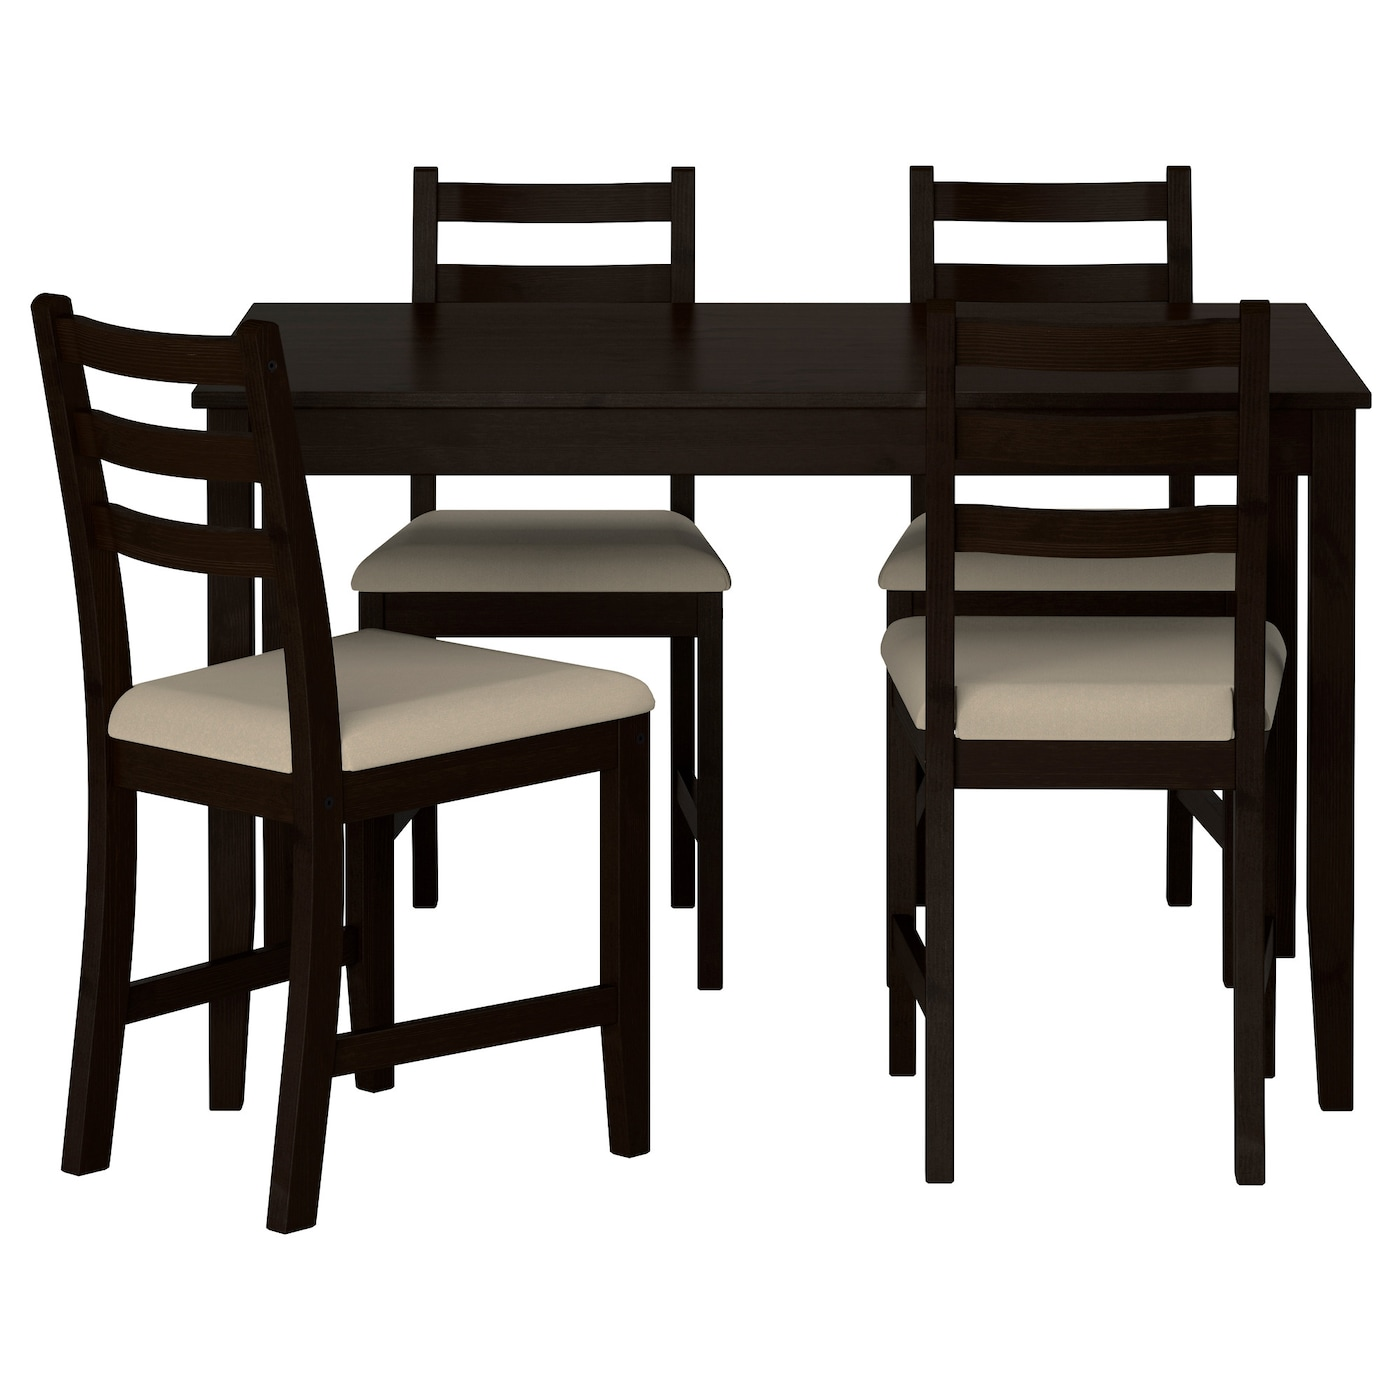 lerhamn table and 4 chairs black brown ramna beige 118x74 cm ikea. Black Bedroom Furniture Sets. Home Design Ideas